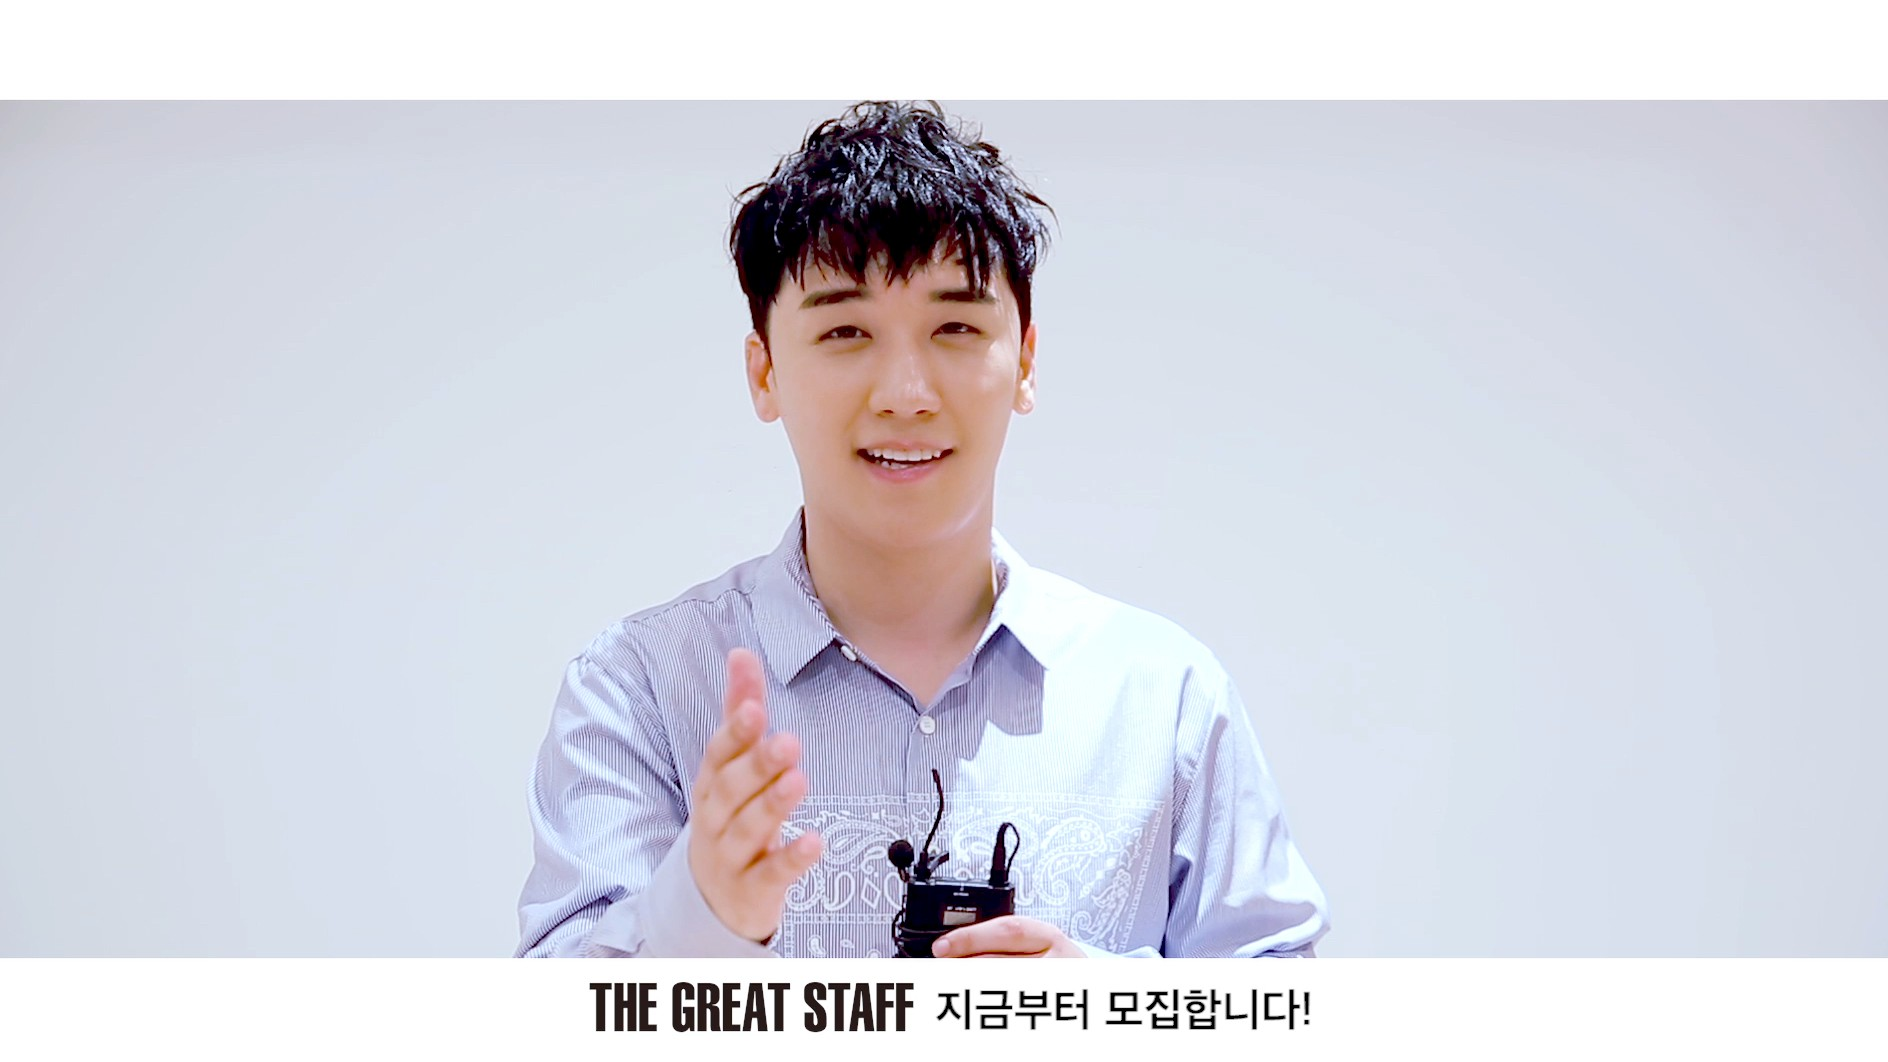 SEUNGRI - MUSIC VIDEO SET TOUR 'THE GREAT STAFF'